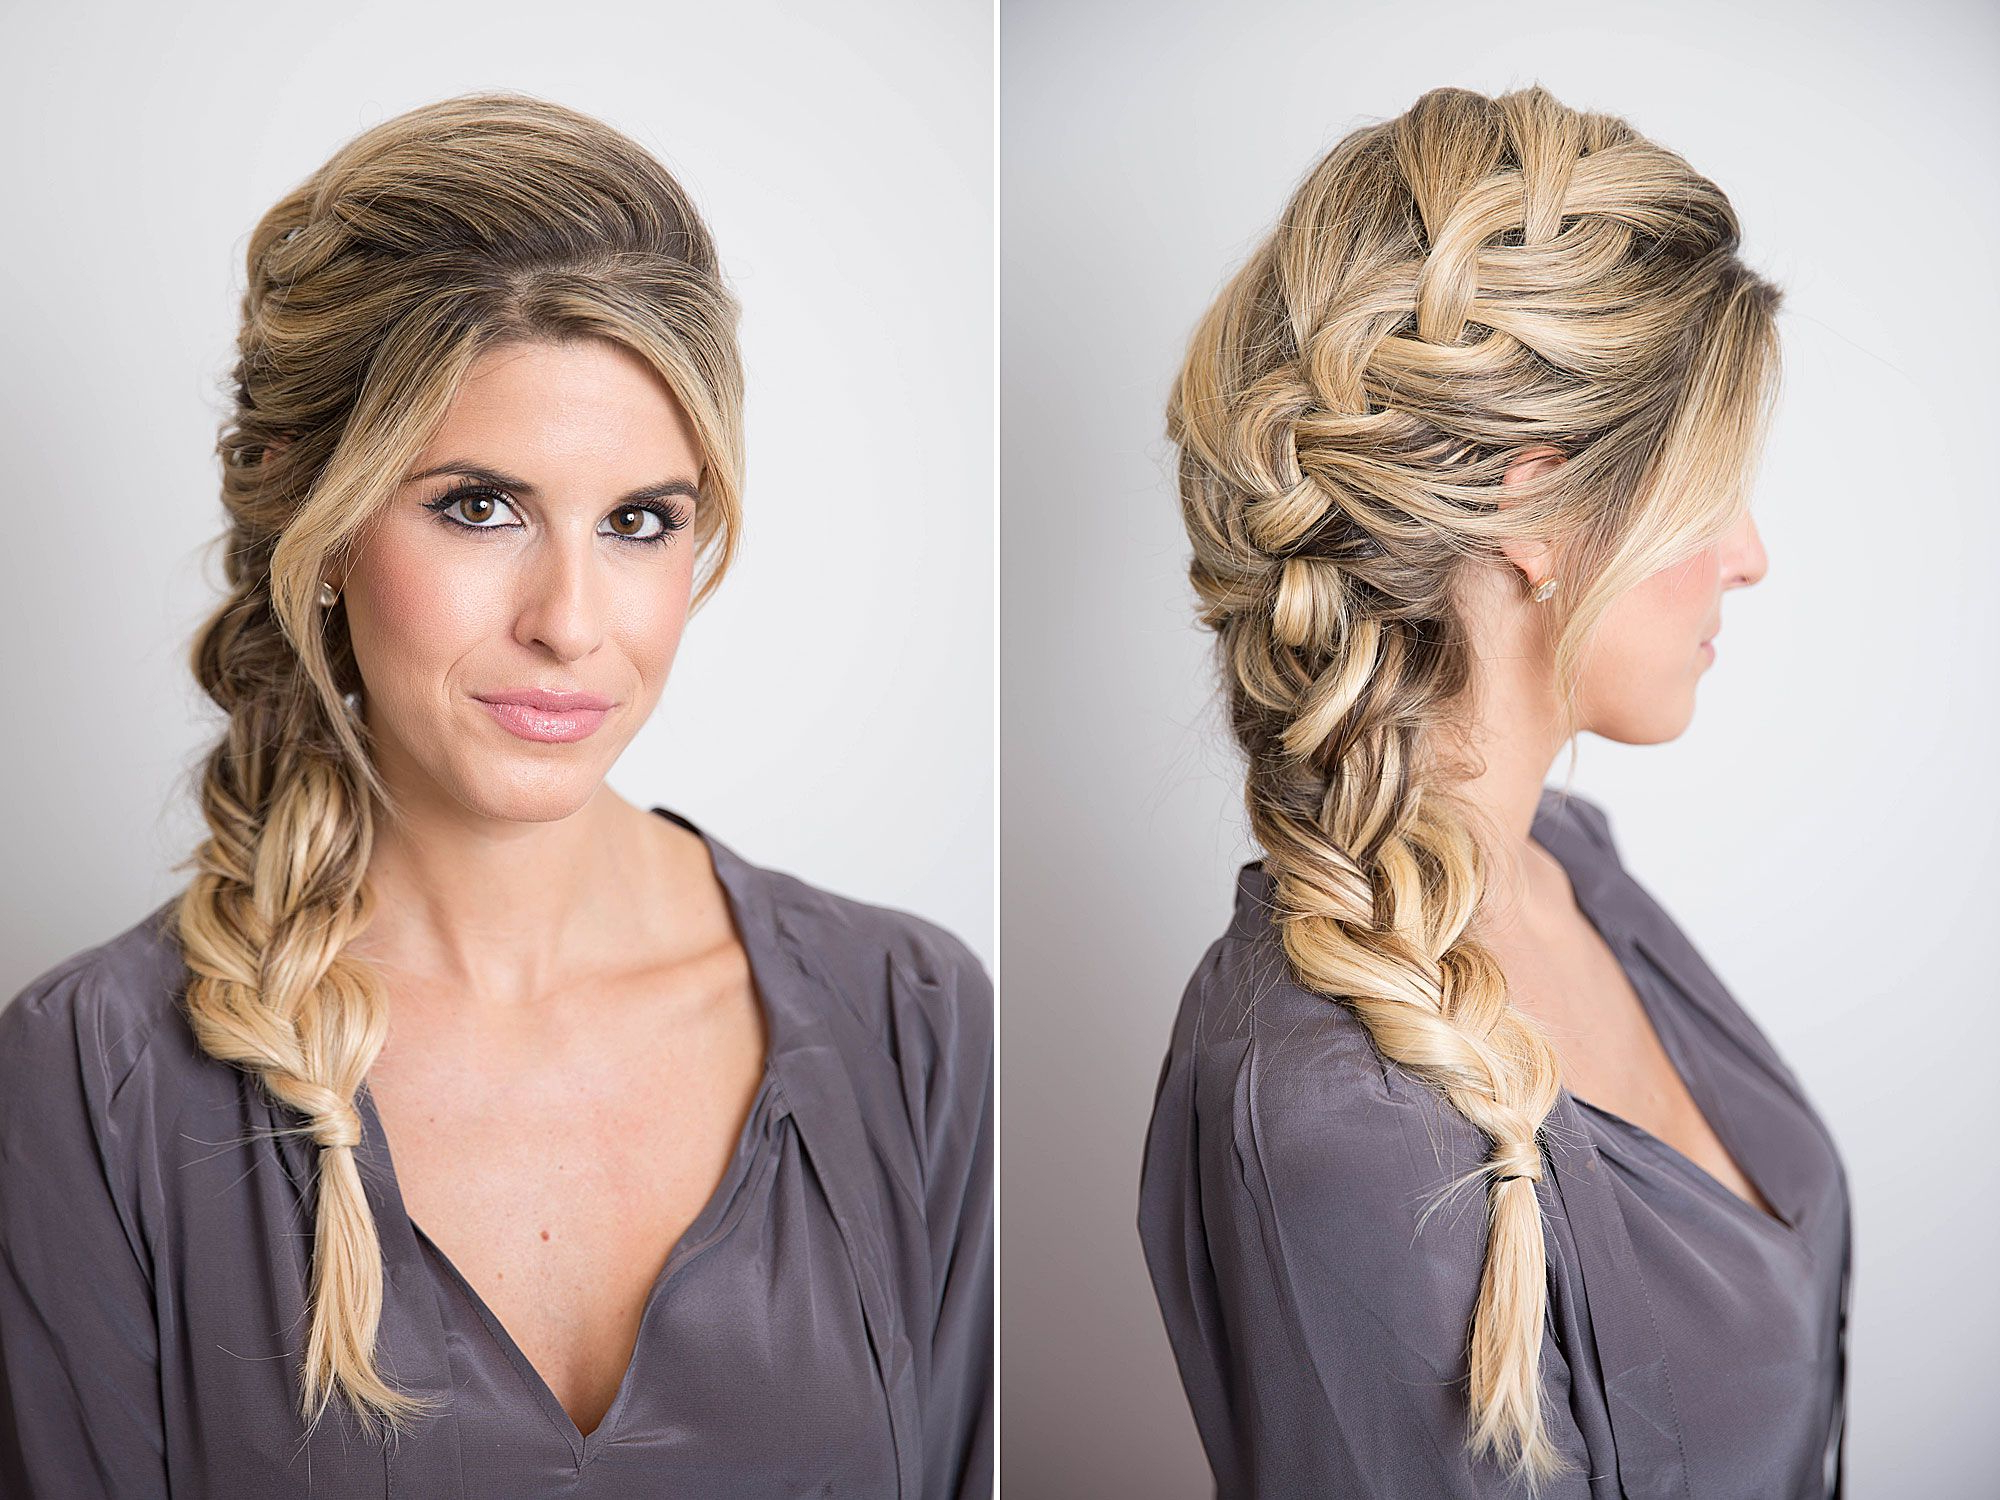 17 Braided Hairstyles With Gifs – How To Do Every Type Of Braid Inside Popular Faux Halo Braided Hairstyles For Short Hair (Gallery 19 of 20)